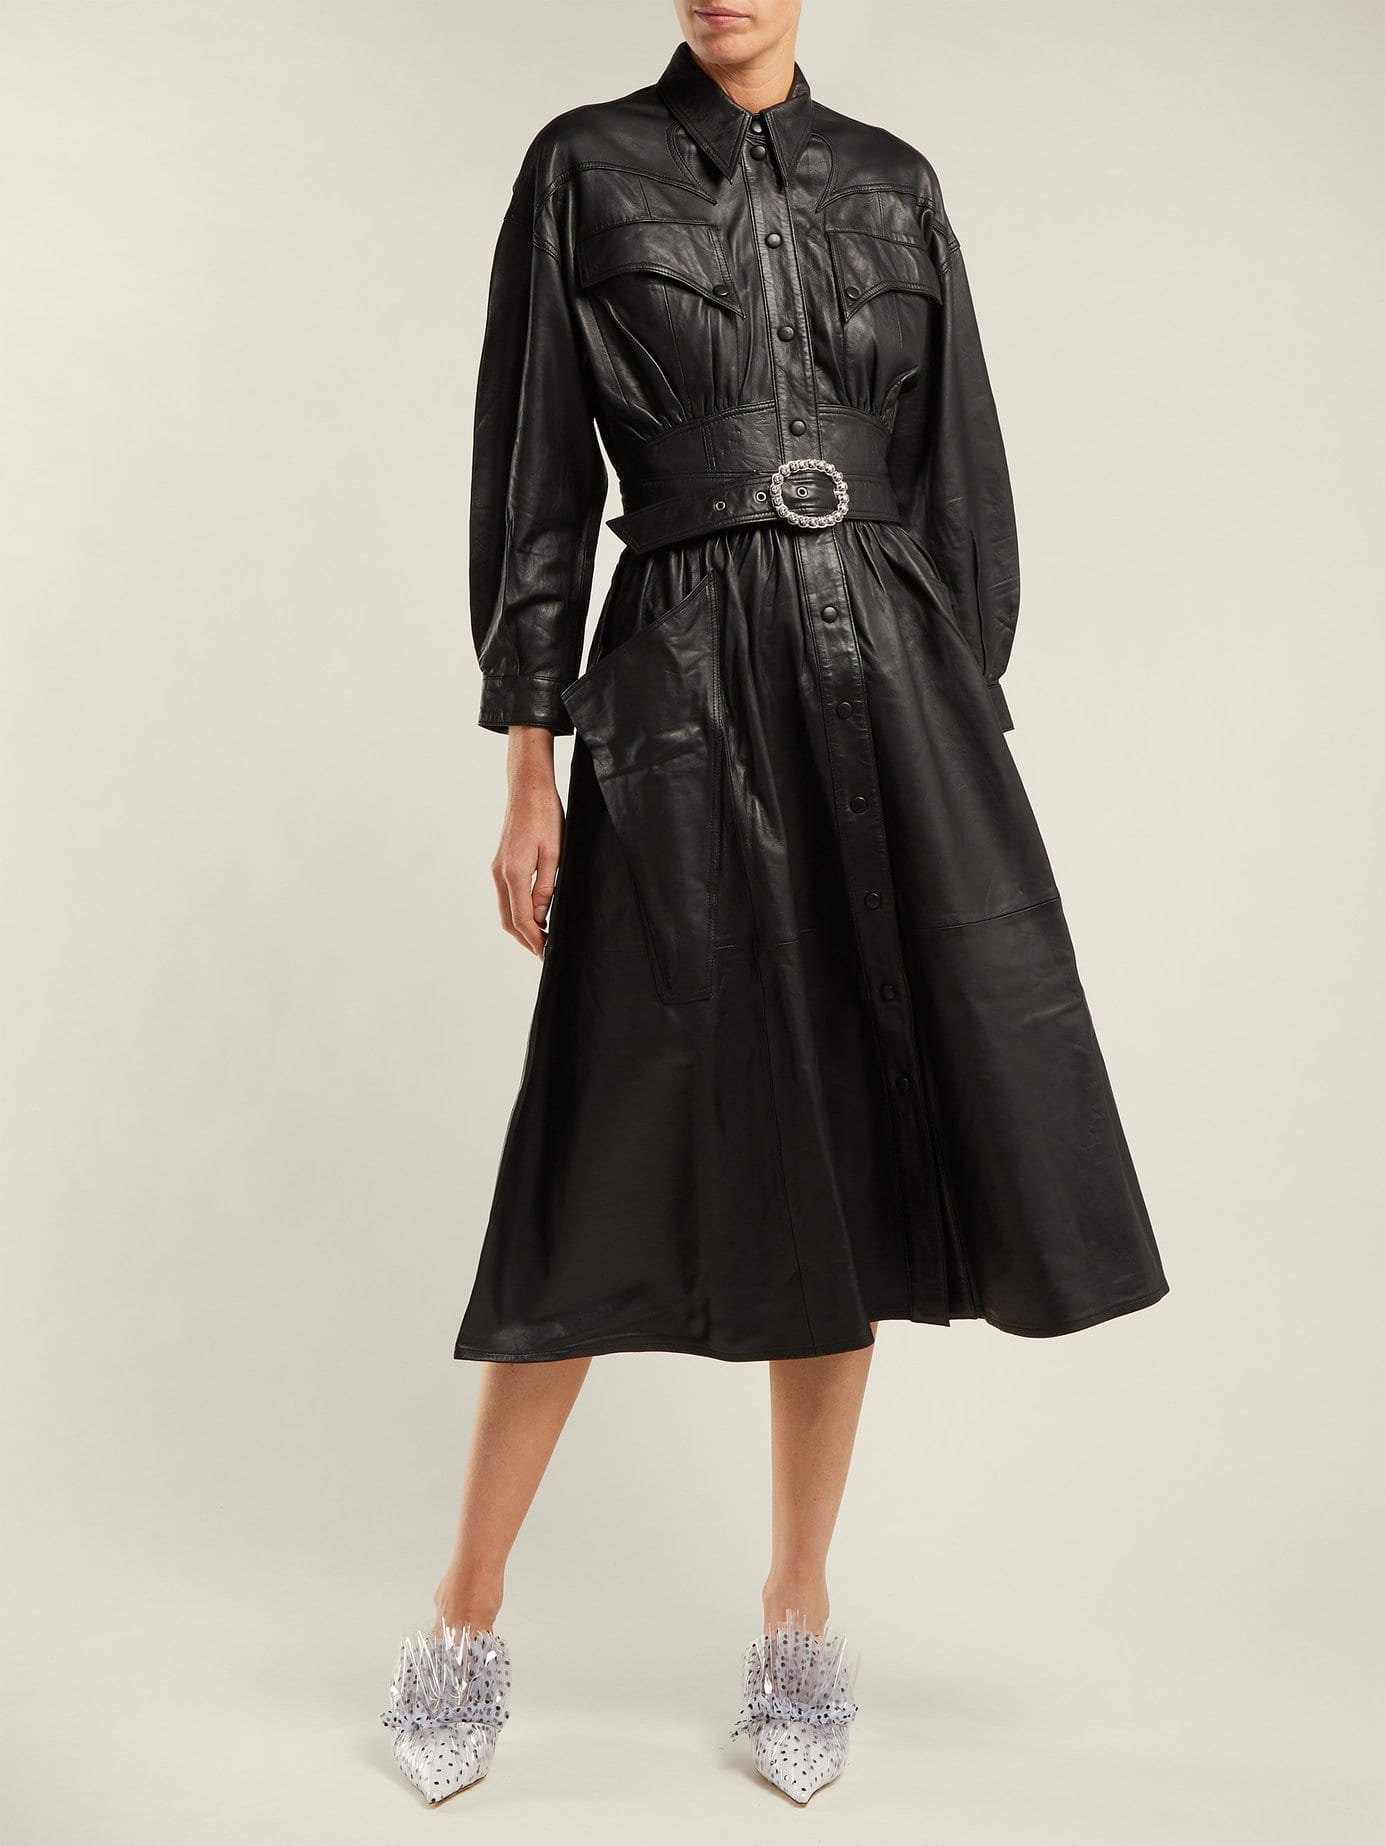 DODO BAR OR Belted Leather Black Dress